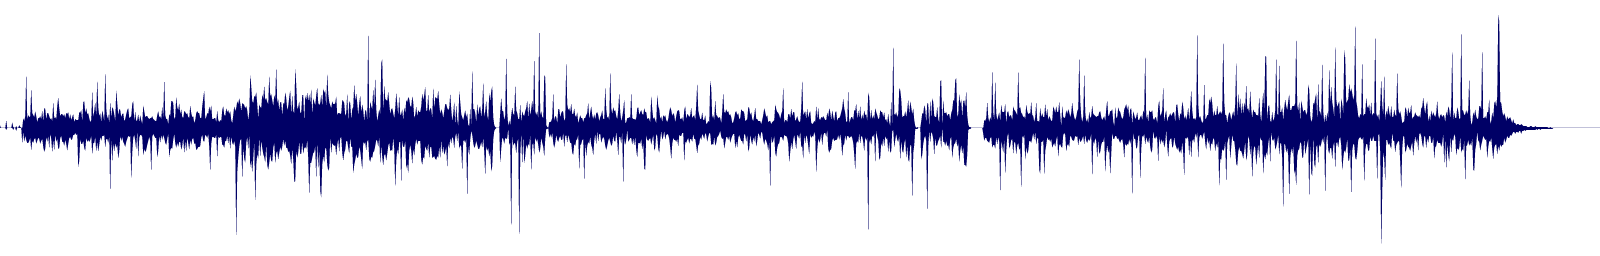 waveform of track #131738